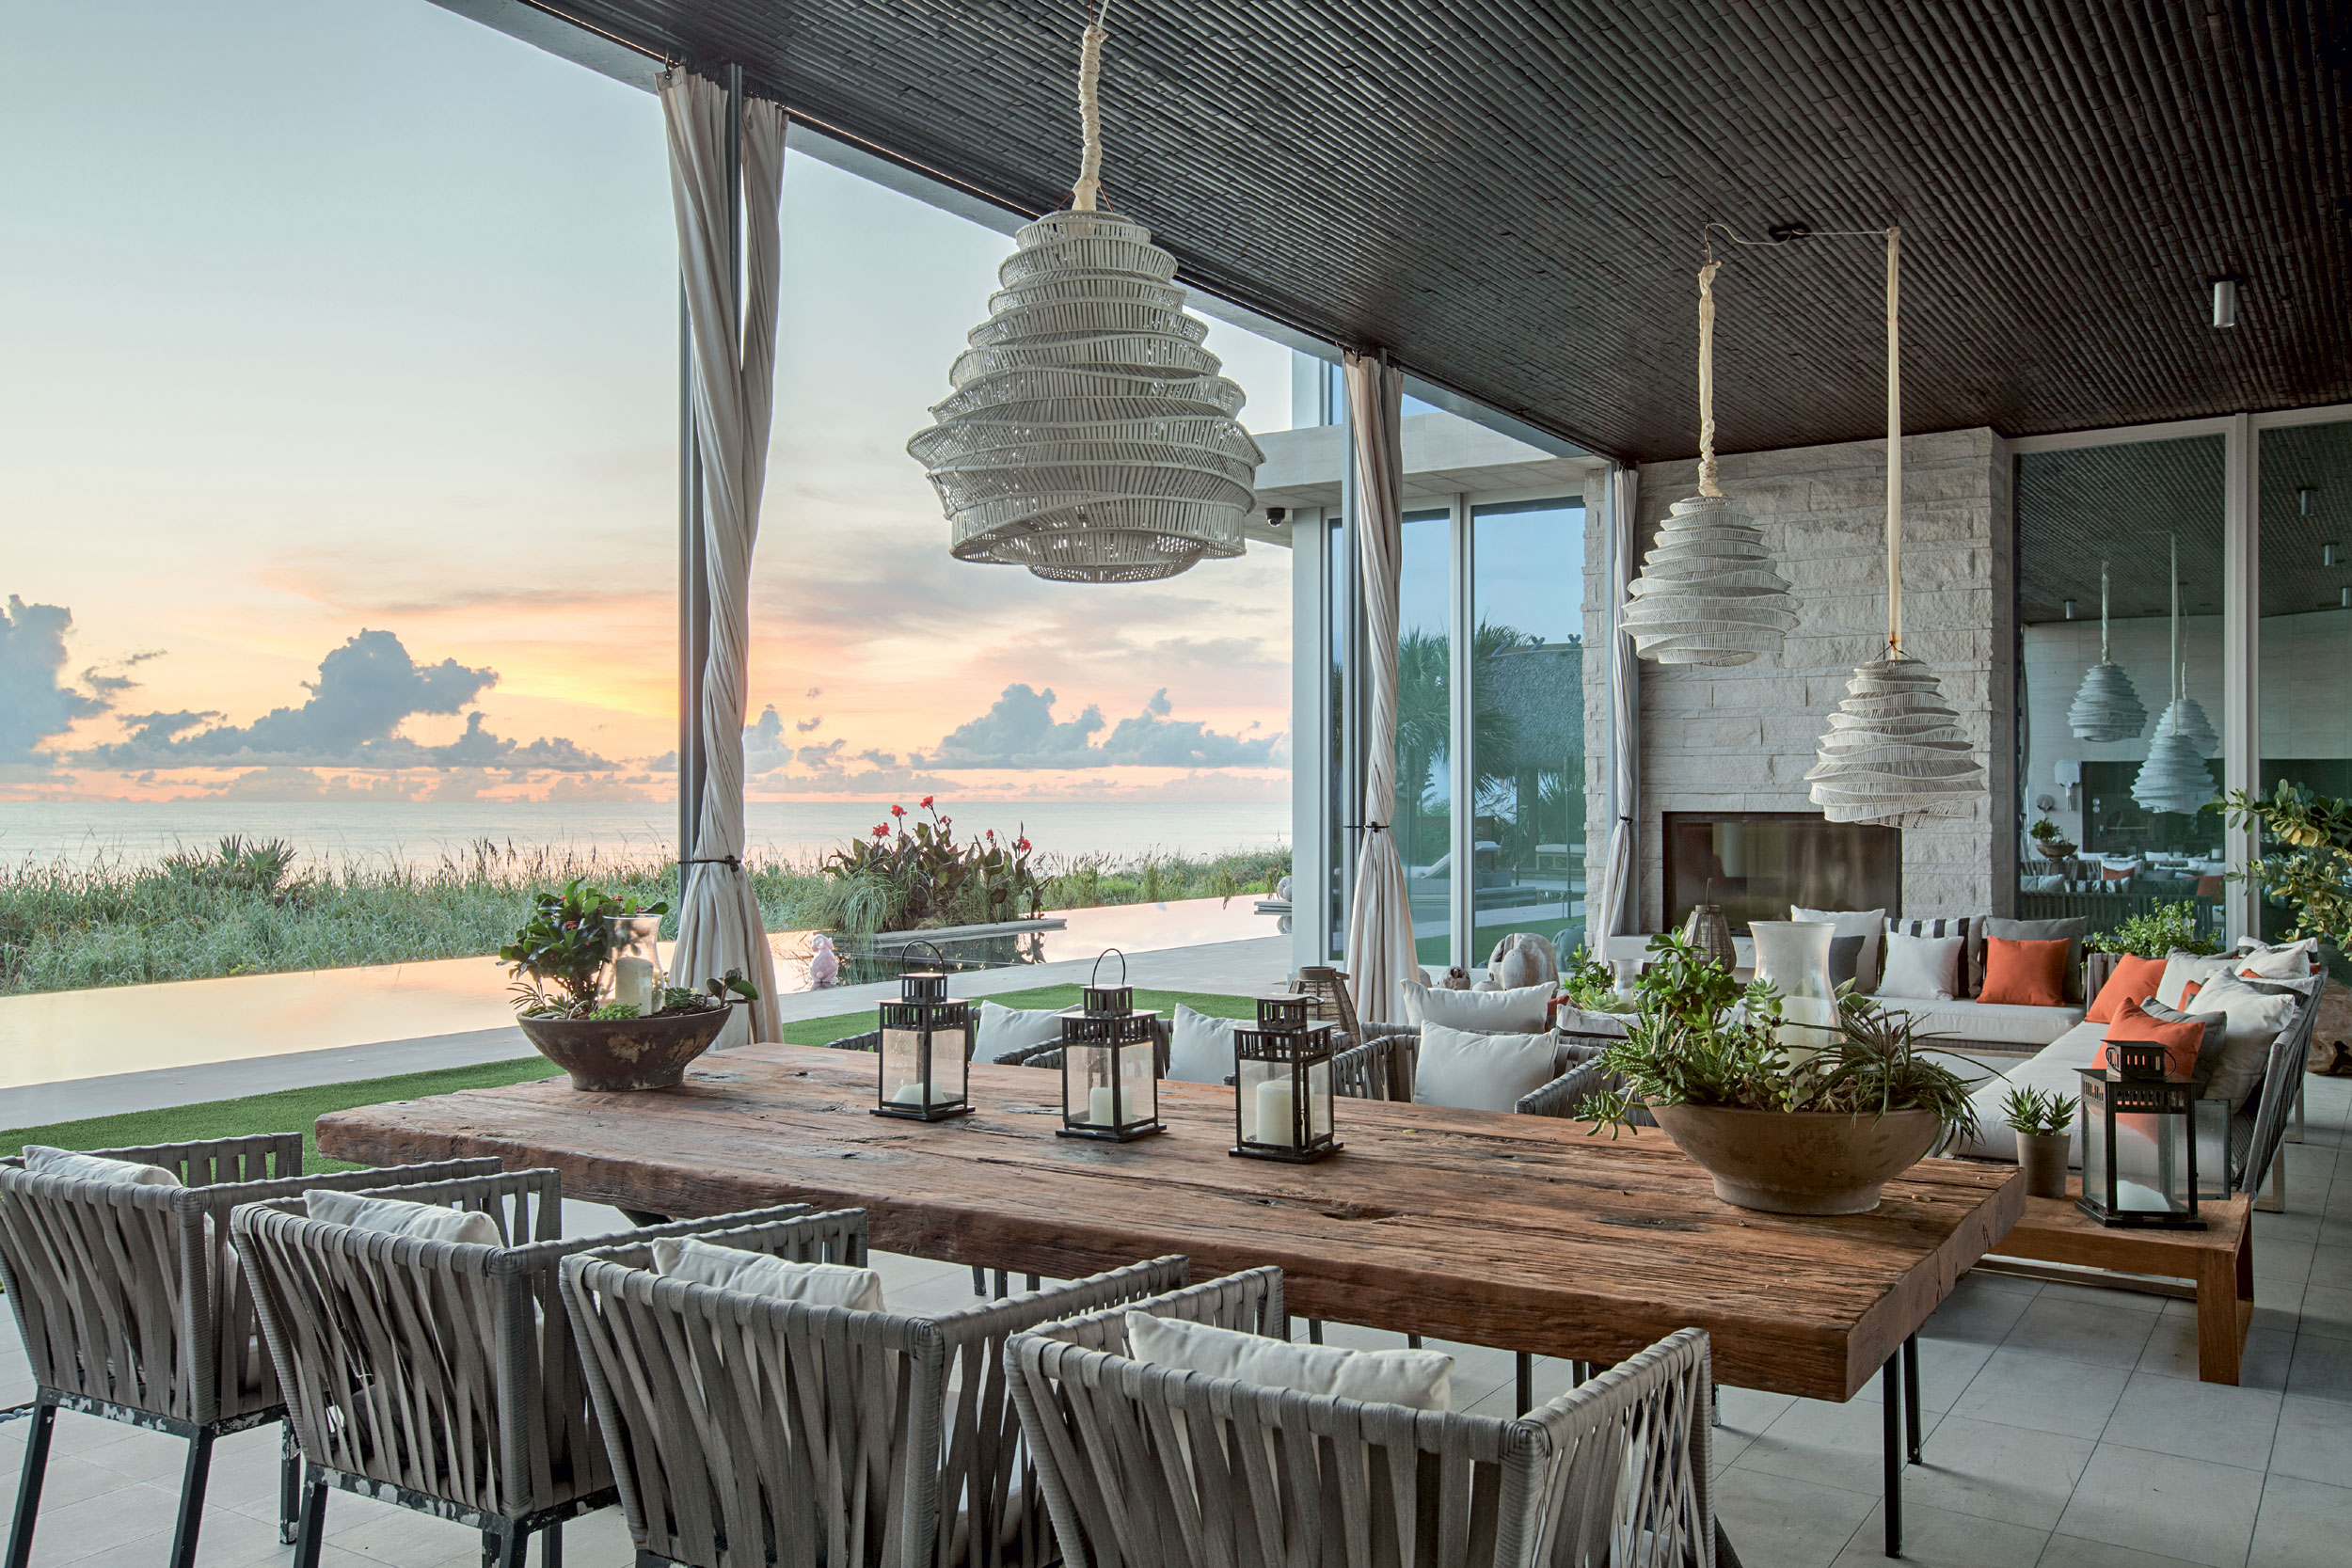 The oceanfront lanai has a fireplace and full summer kitchen with wood-fired pizza oven overlooking an 80-foot-long infinity and wading pool with in-water seating.